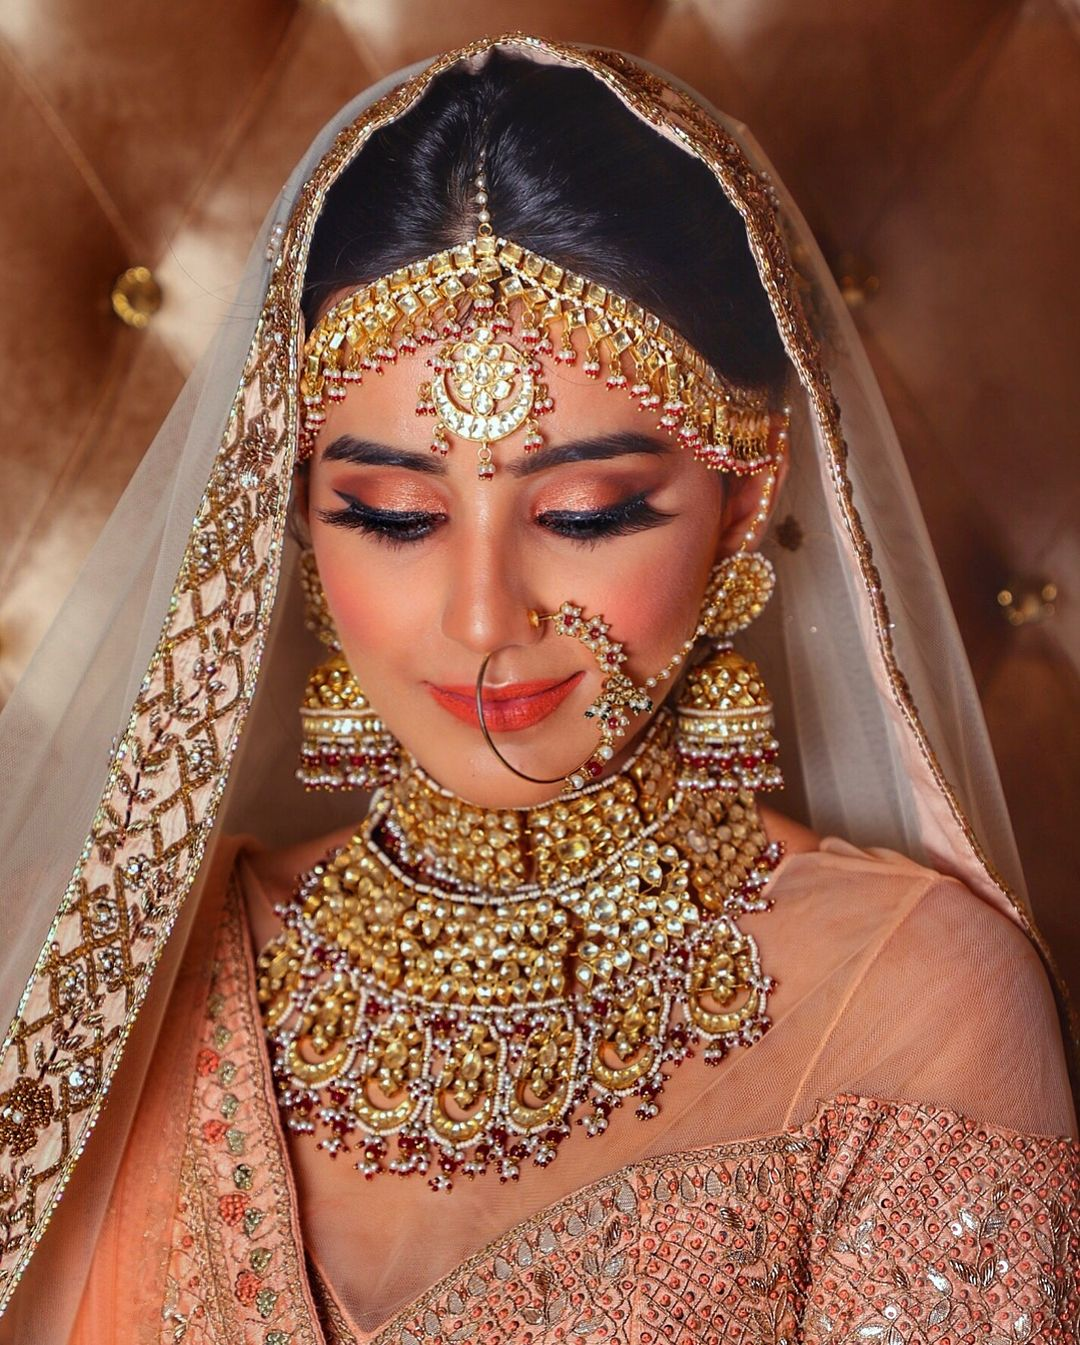 THE GRAND BRIDAL LOOK of this Stunning Beauty and Talented